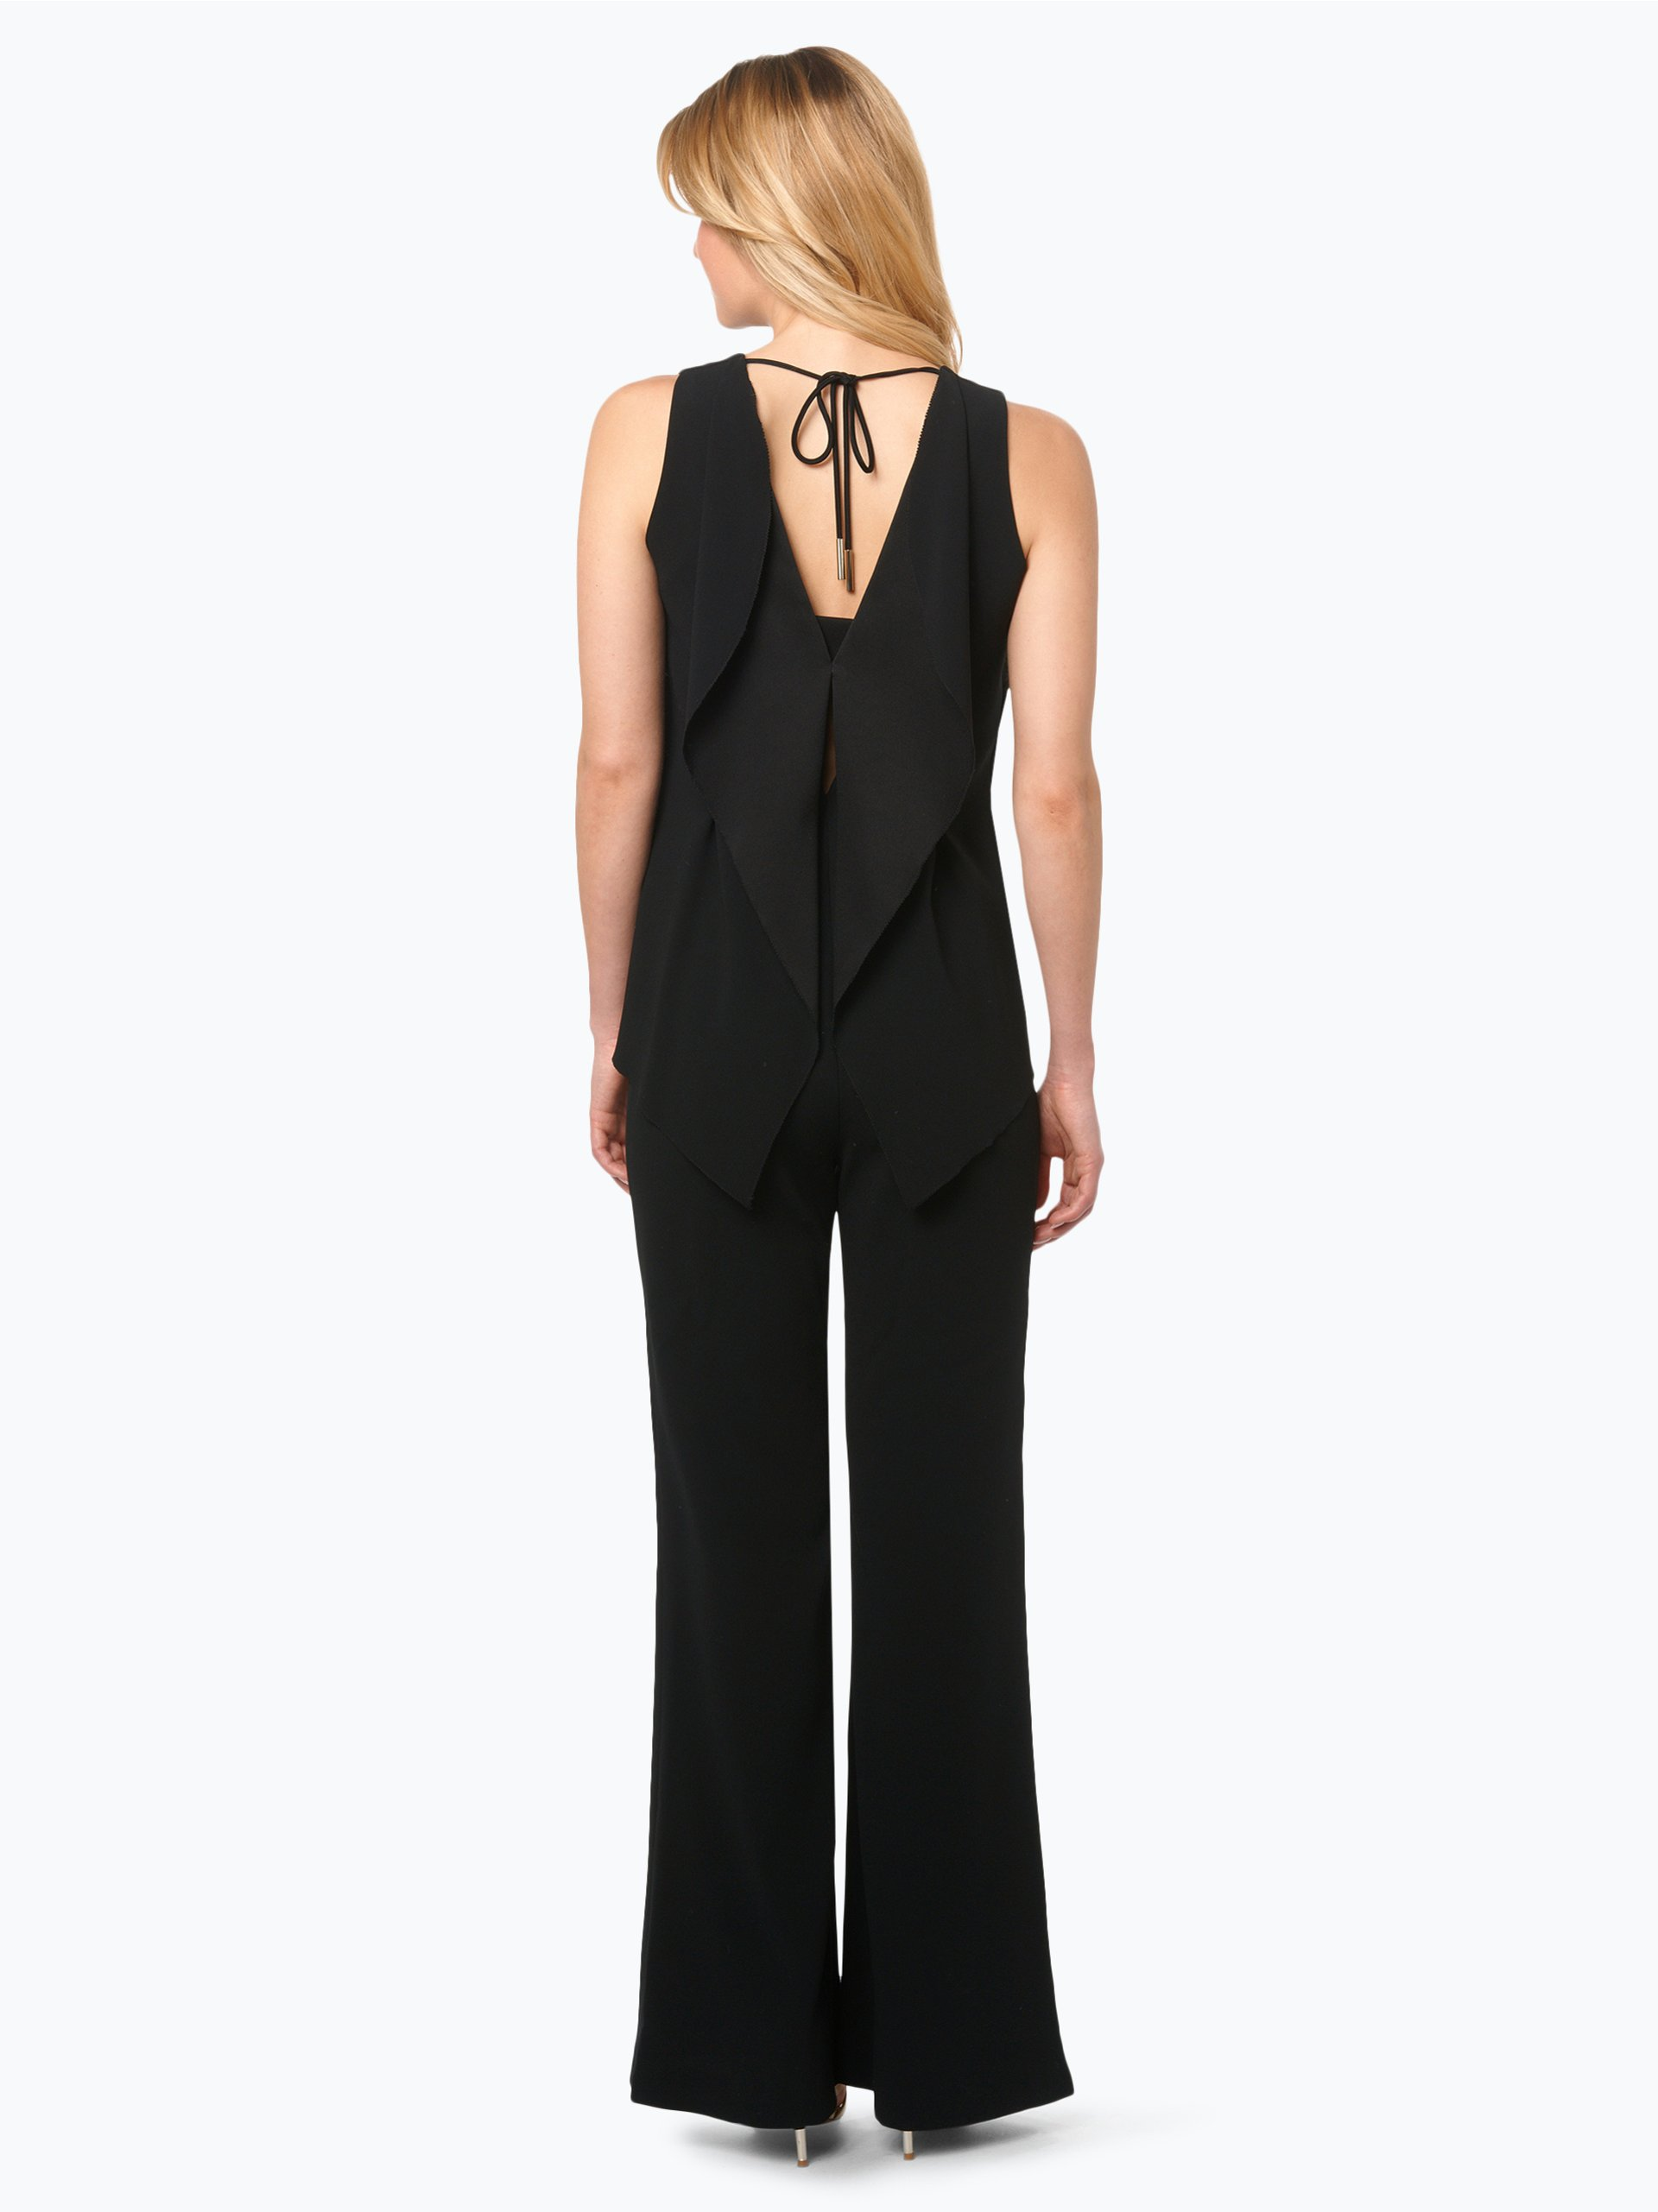 marc cain collections damen jumpsuit mit seiden anteil schwarz uni online kaufen vangraaf com. Black Bedroom Furniture Sets. Home Design Ideas